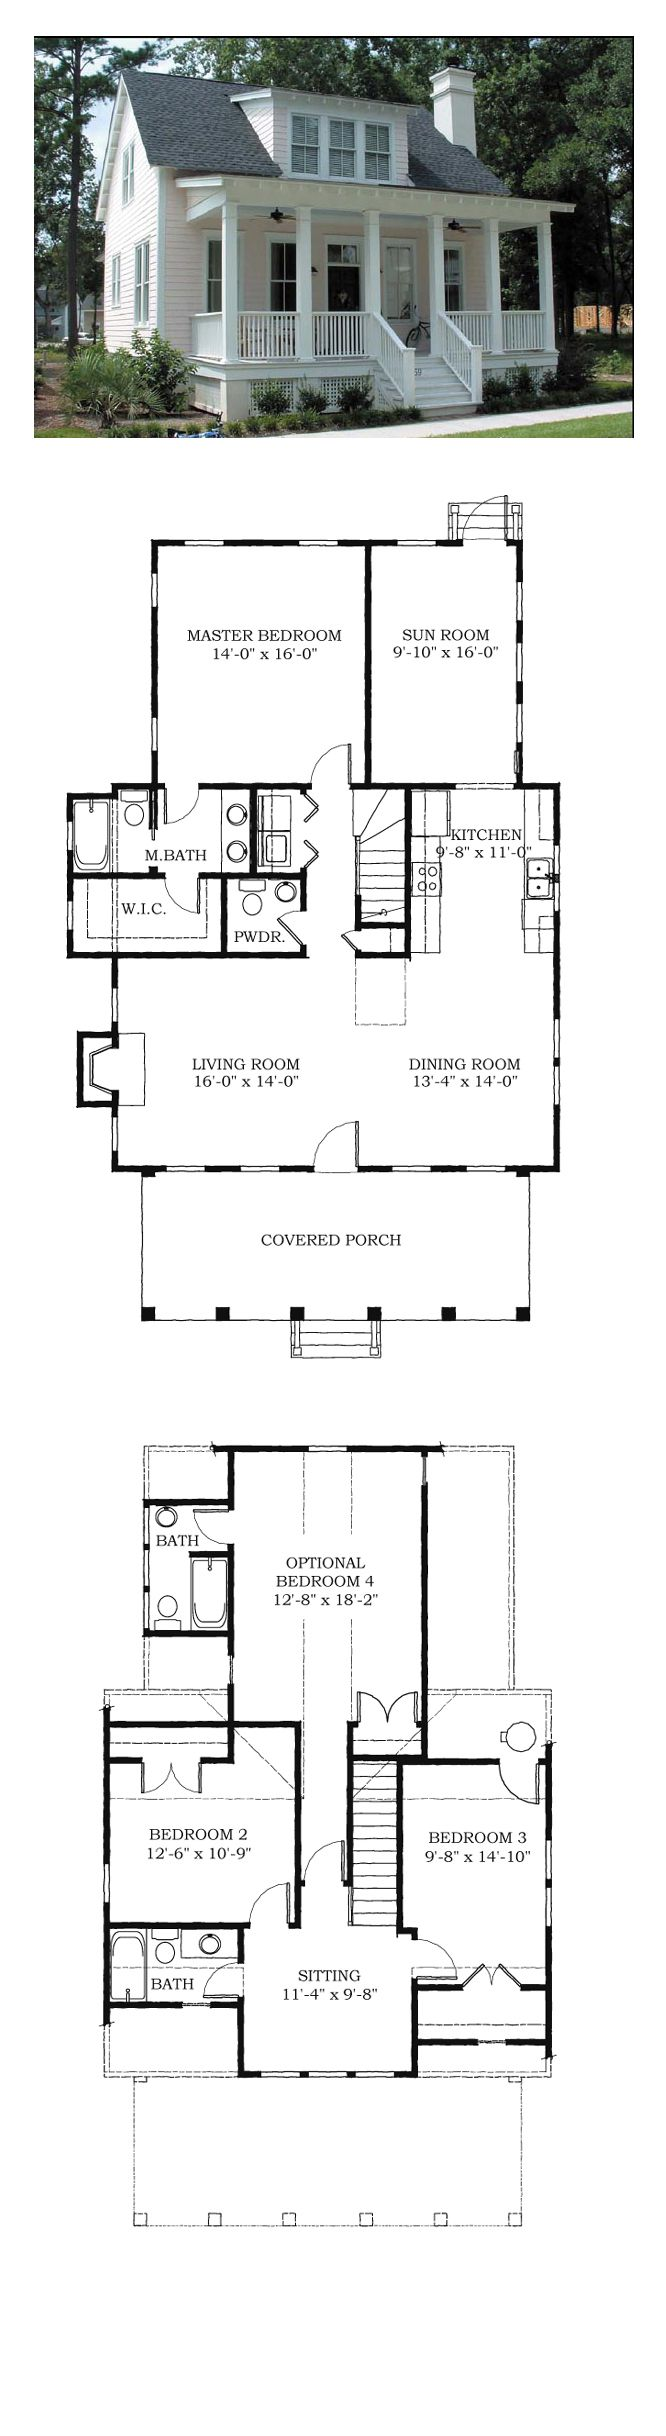 COOL House Plan ID: chp-38703 | Total Living Area: 1783 sq. ft., 4 bedrooms and 3.5 bathrooms. GUESTHOUSE